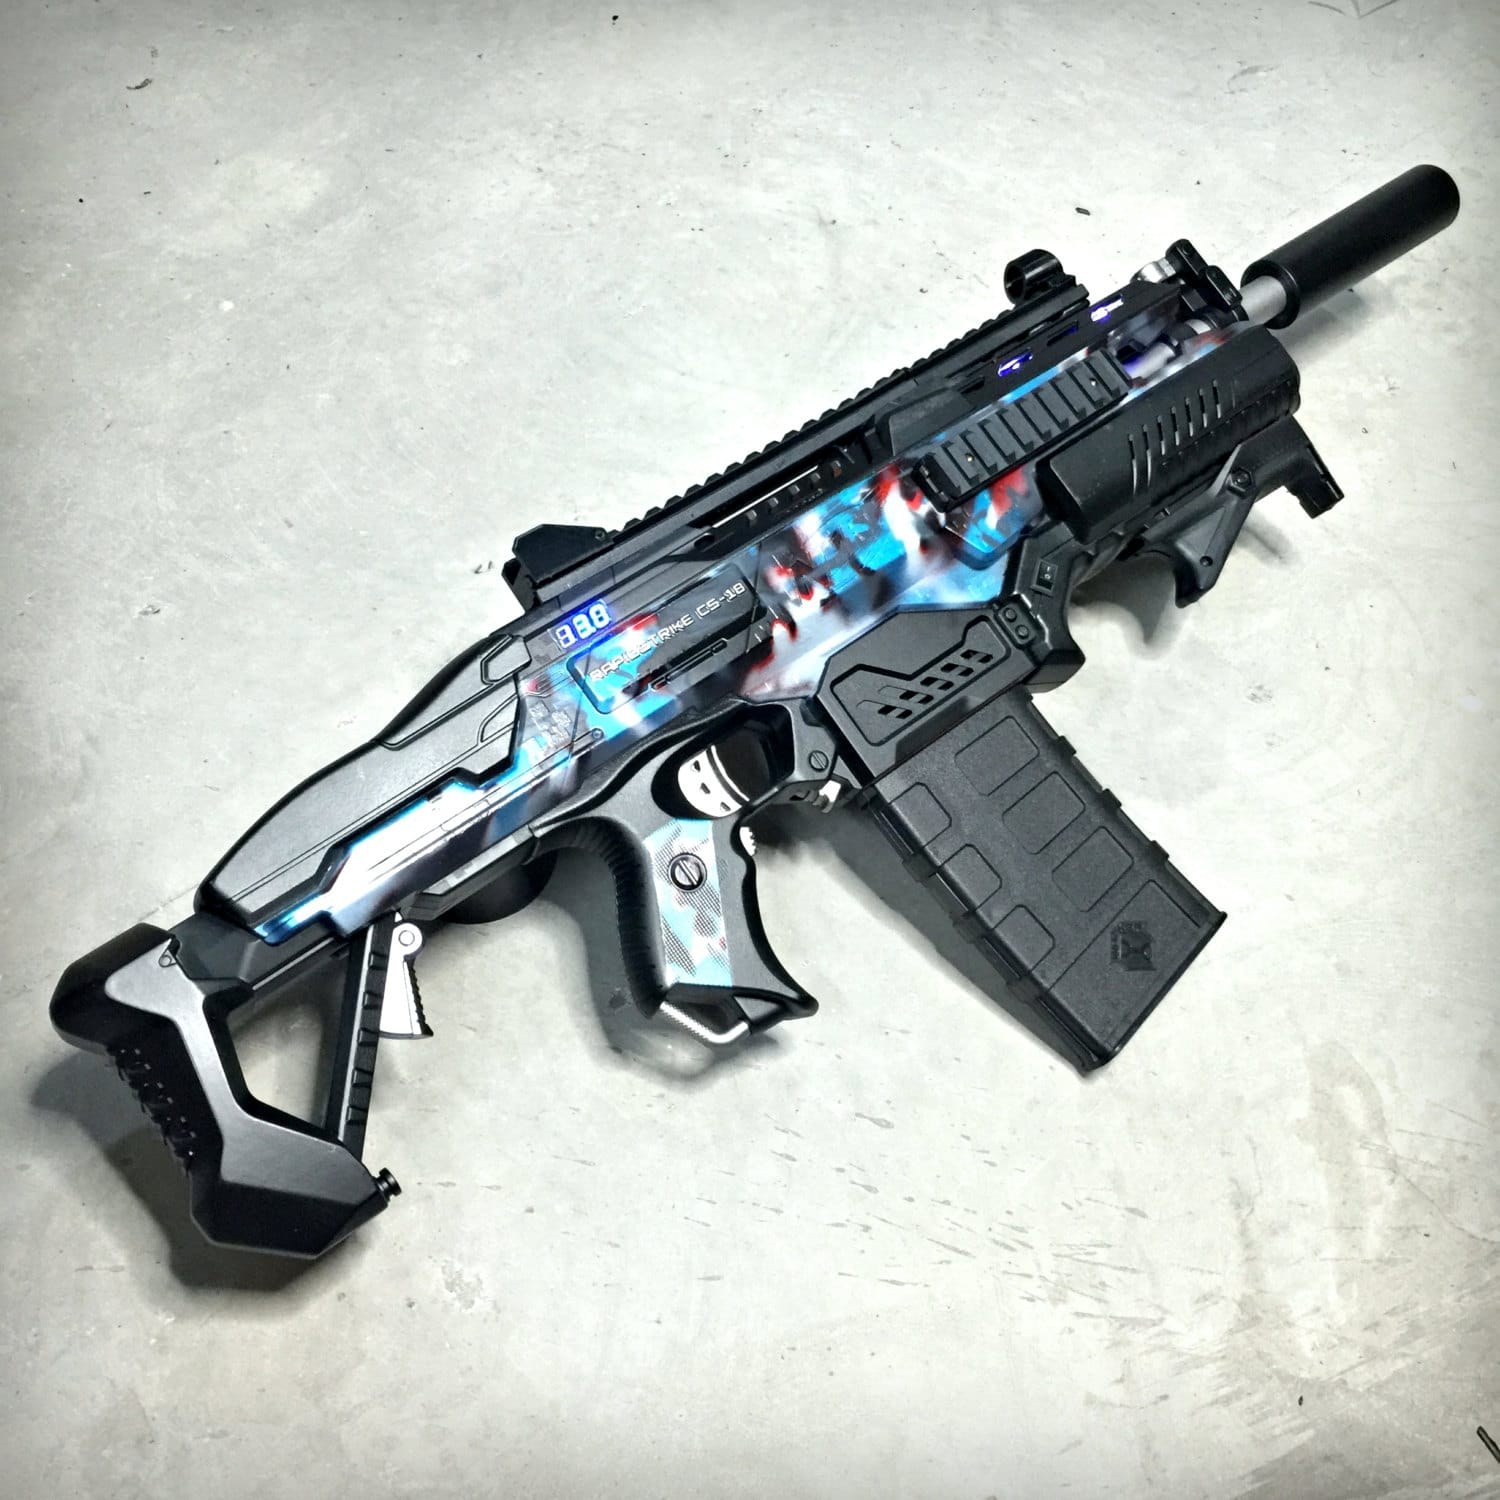 Inside the M4 Arctic Black Camo gun modifications include a full set internal rewiring internal lubrication magazine quick release lever and an upgraded